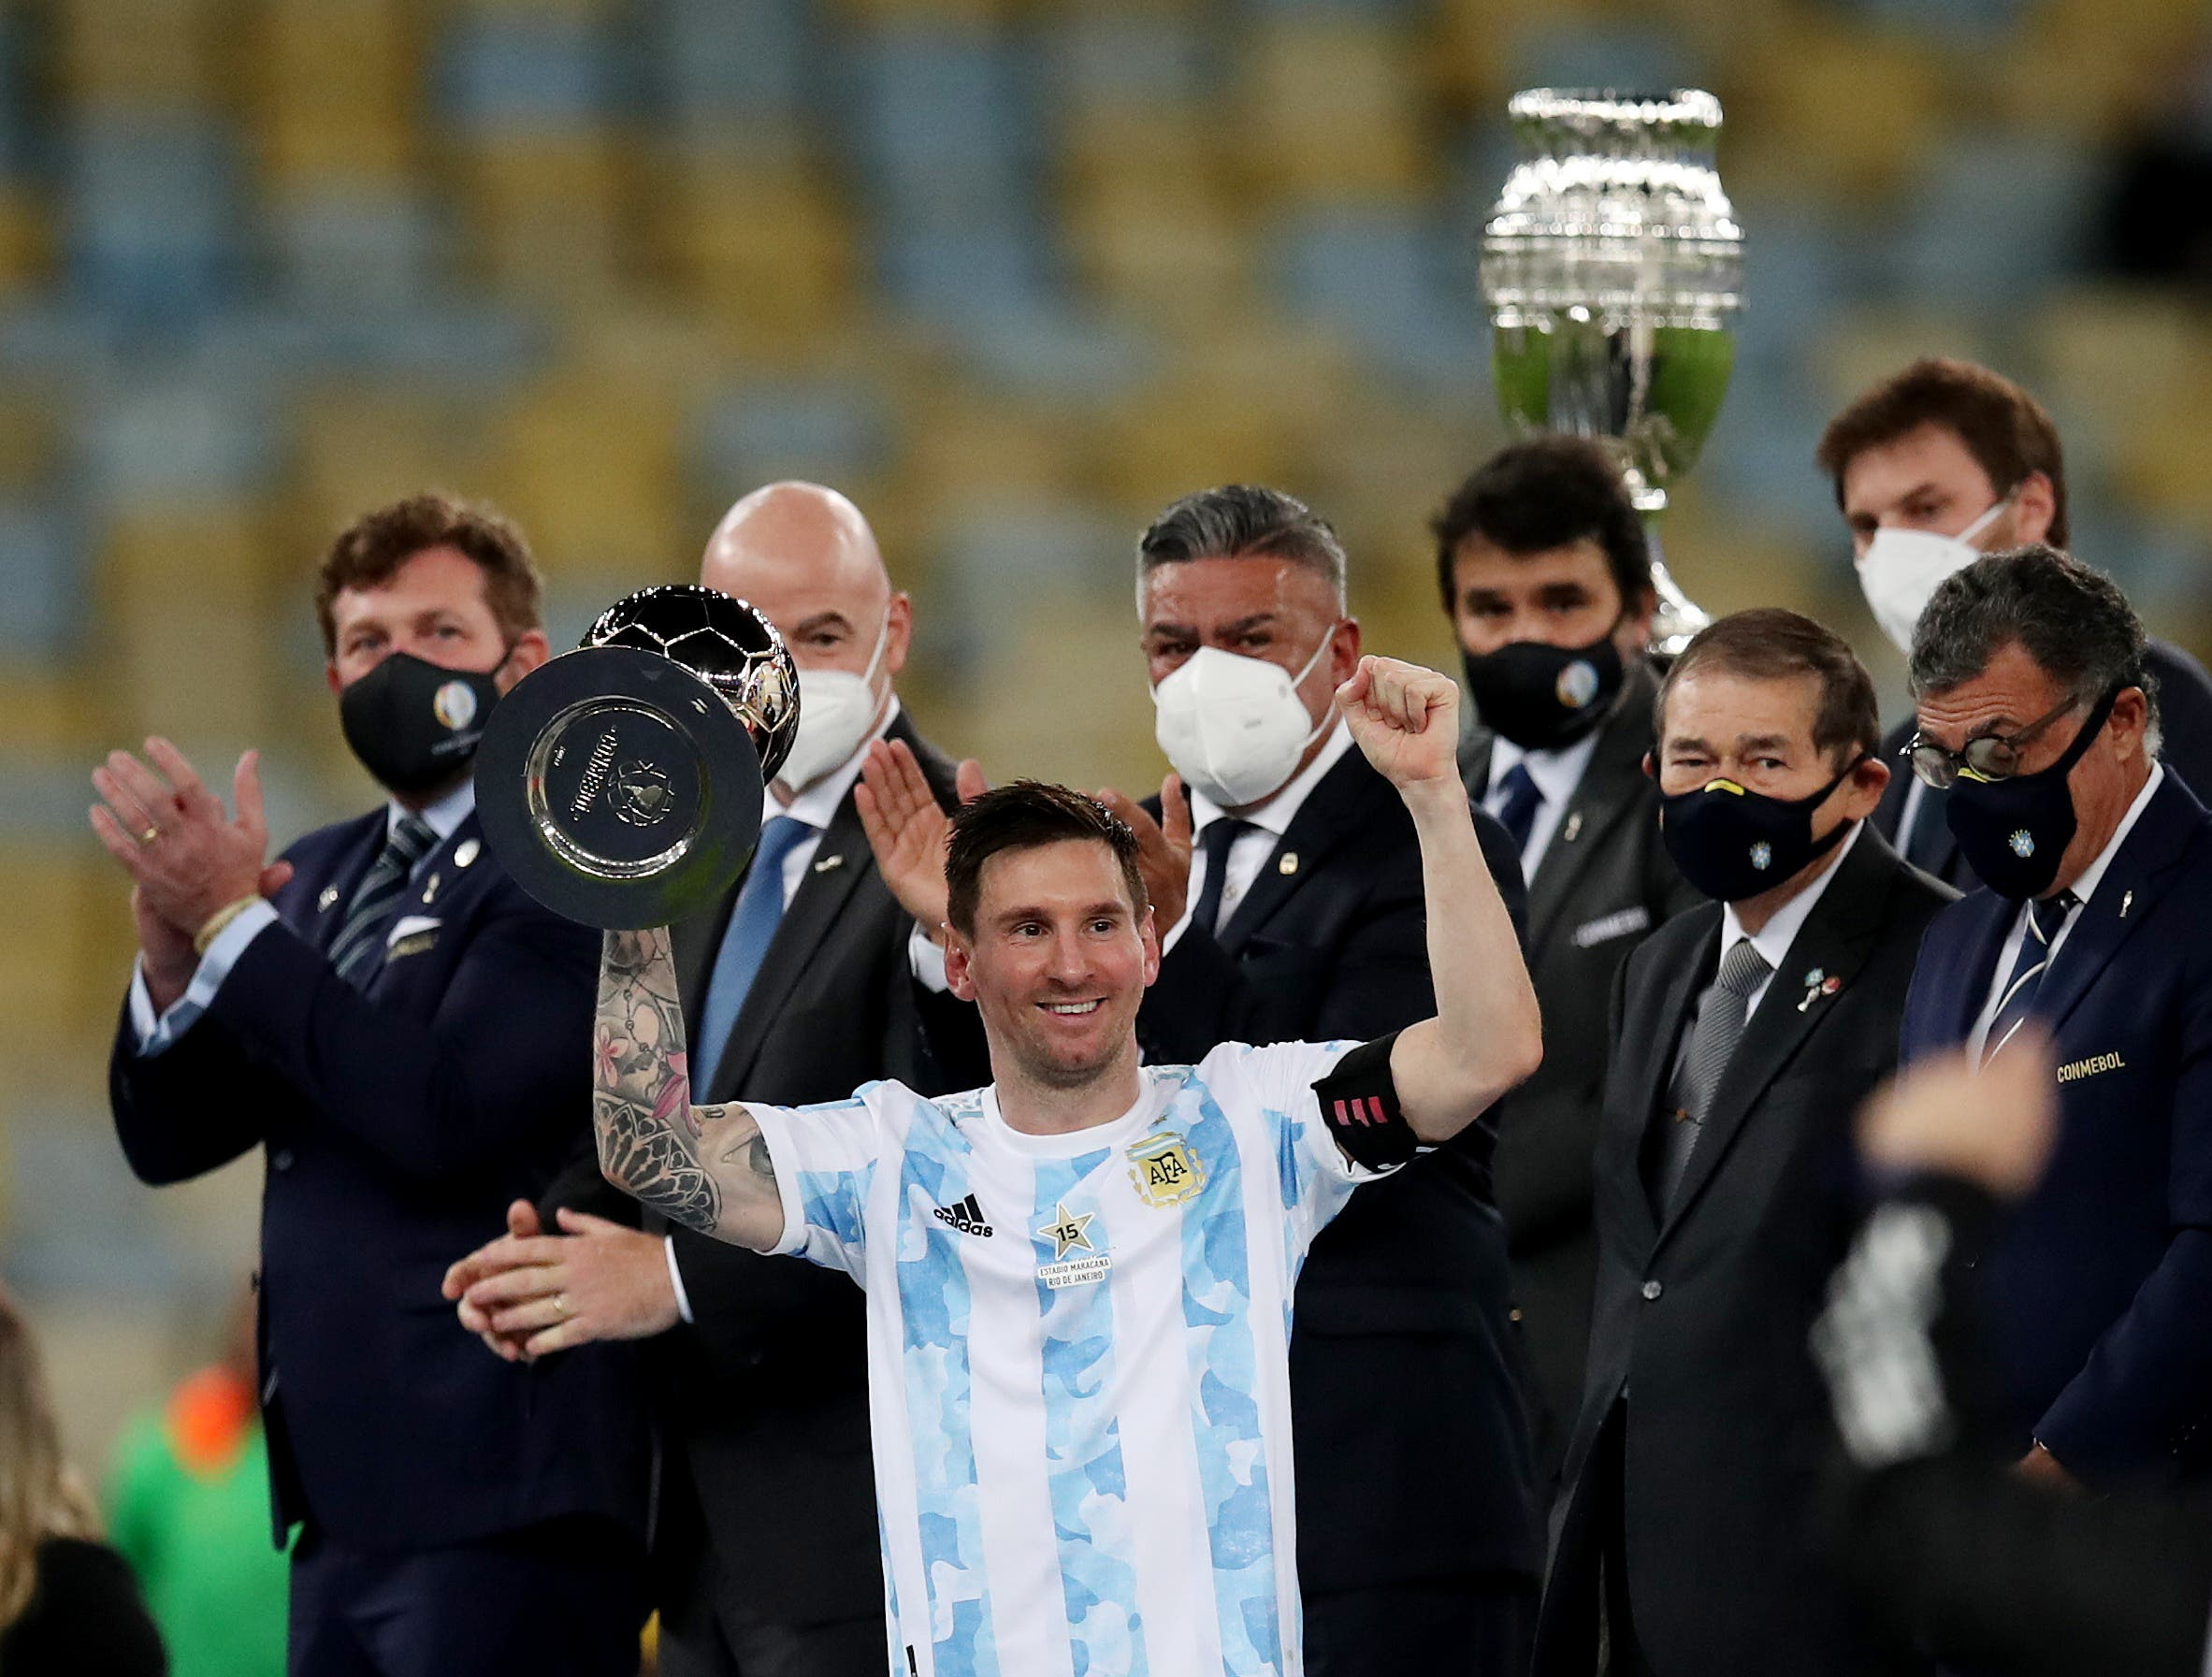 Argentina's Lionel Messi celebrates winning the Copa America with the trophy. (Reuters)